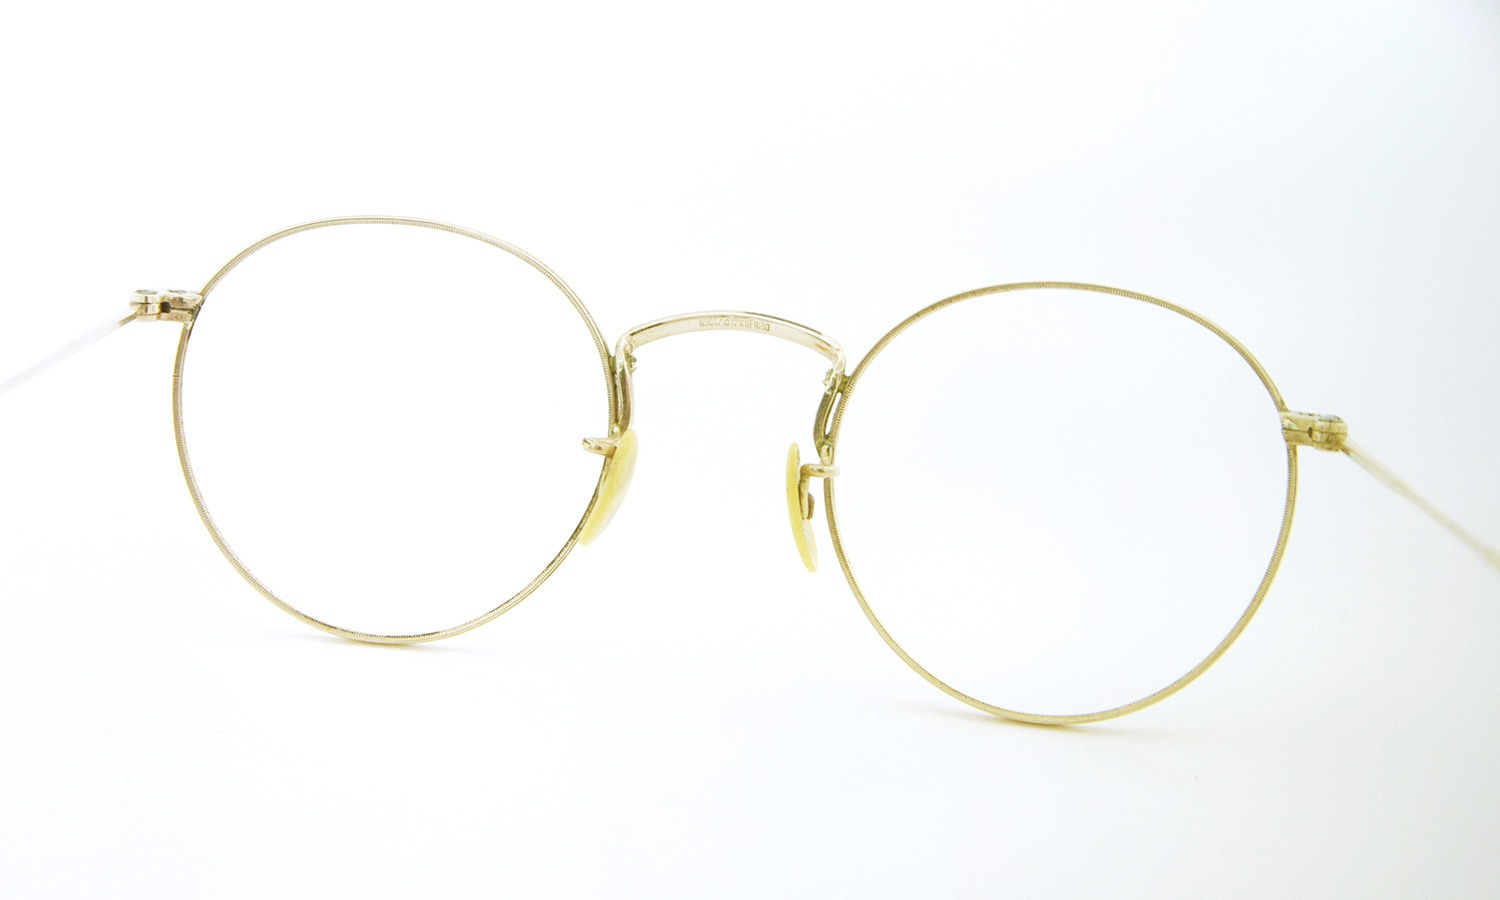 American vintage アメリカン ヴィンテージ メガネ 1930年代 P3 BS01/10 12KGF HIBO MARSHWOOD col.Golds 7